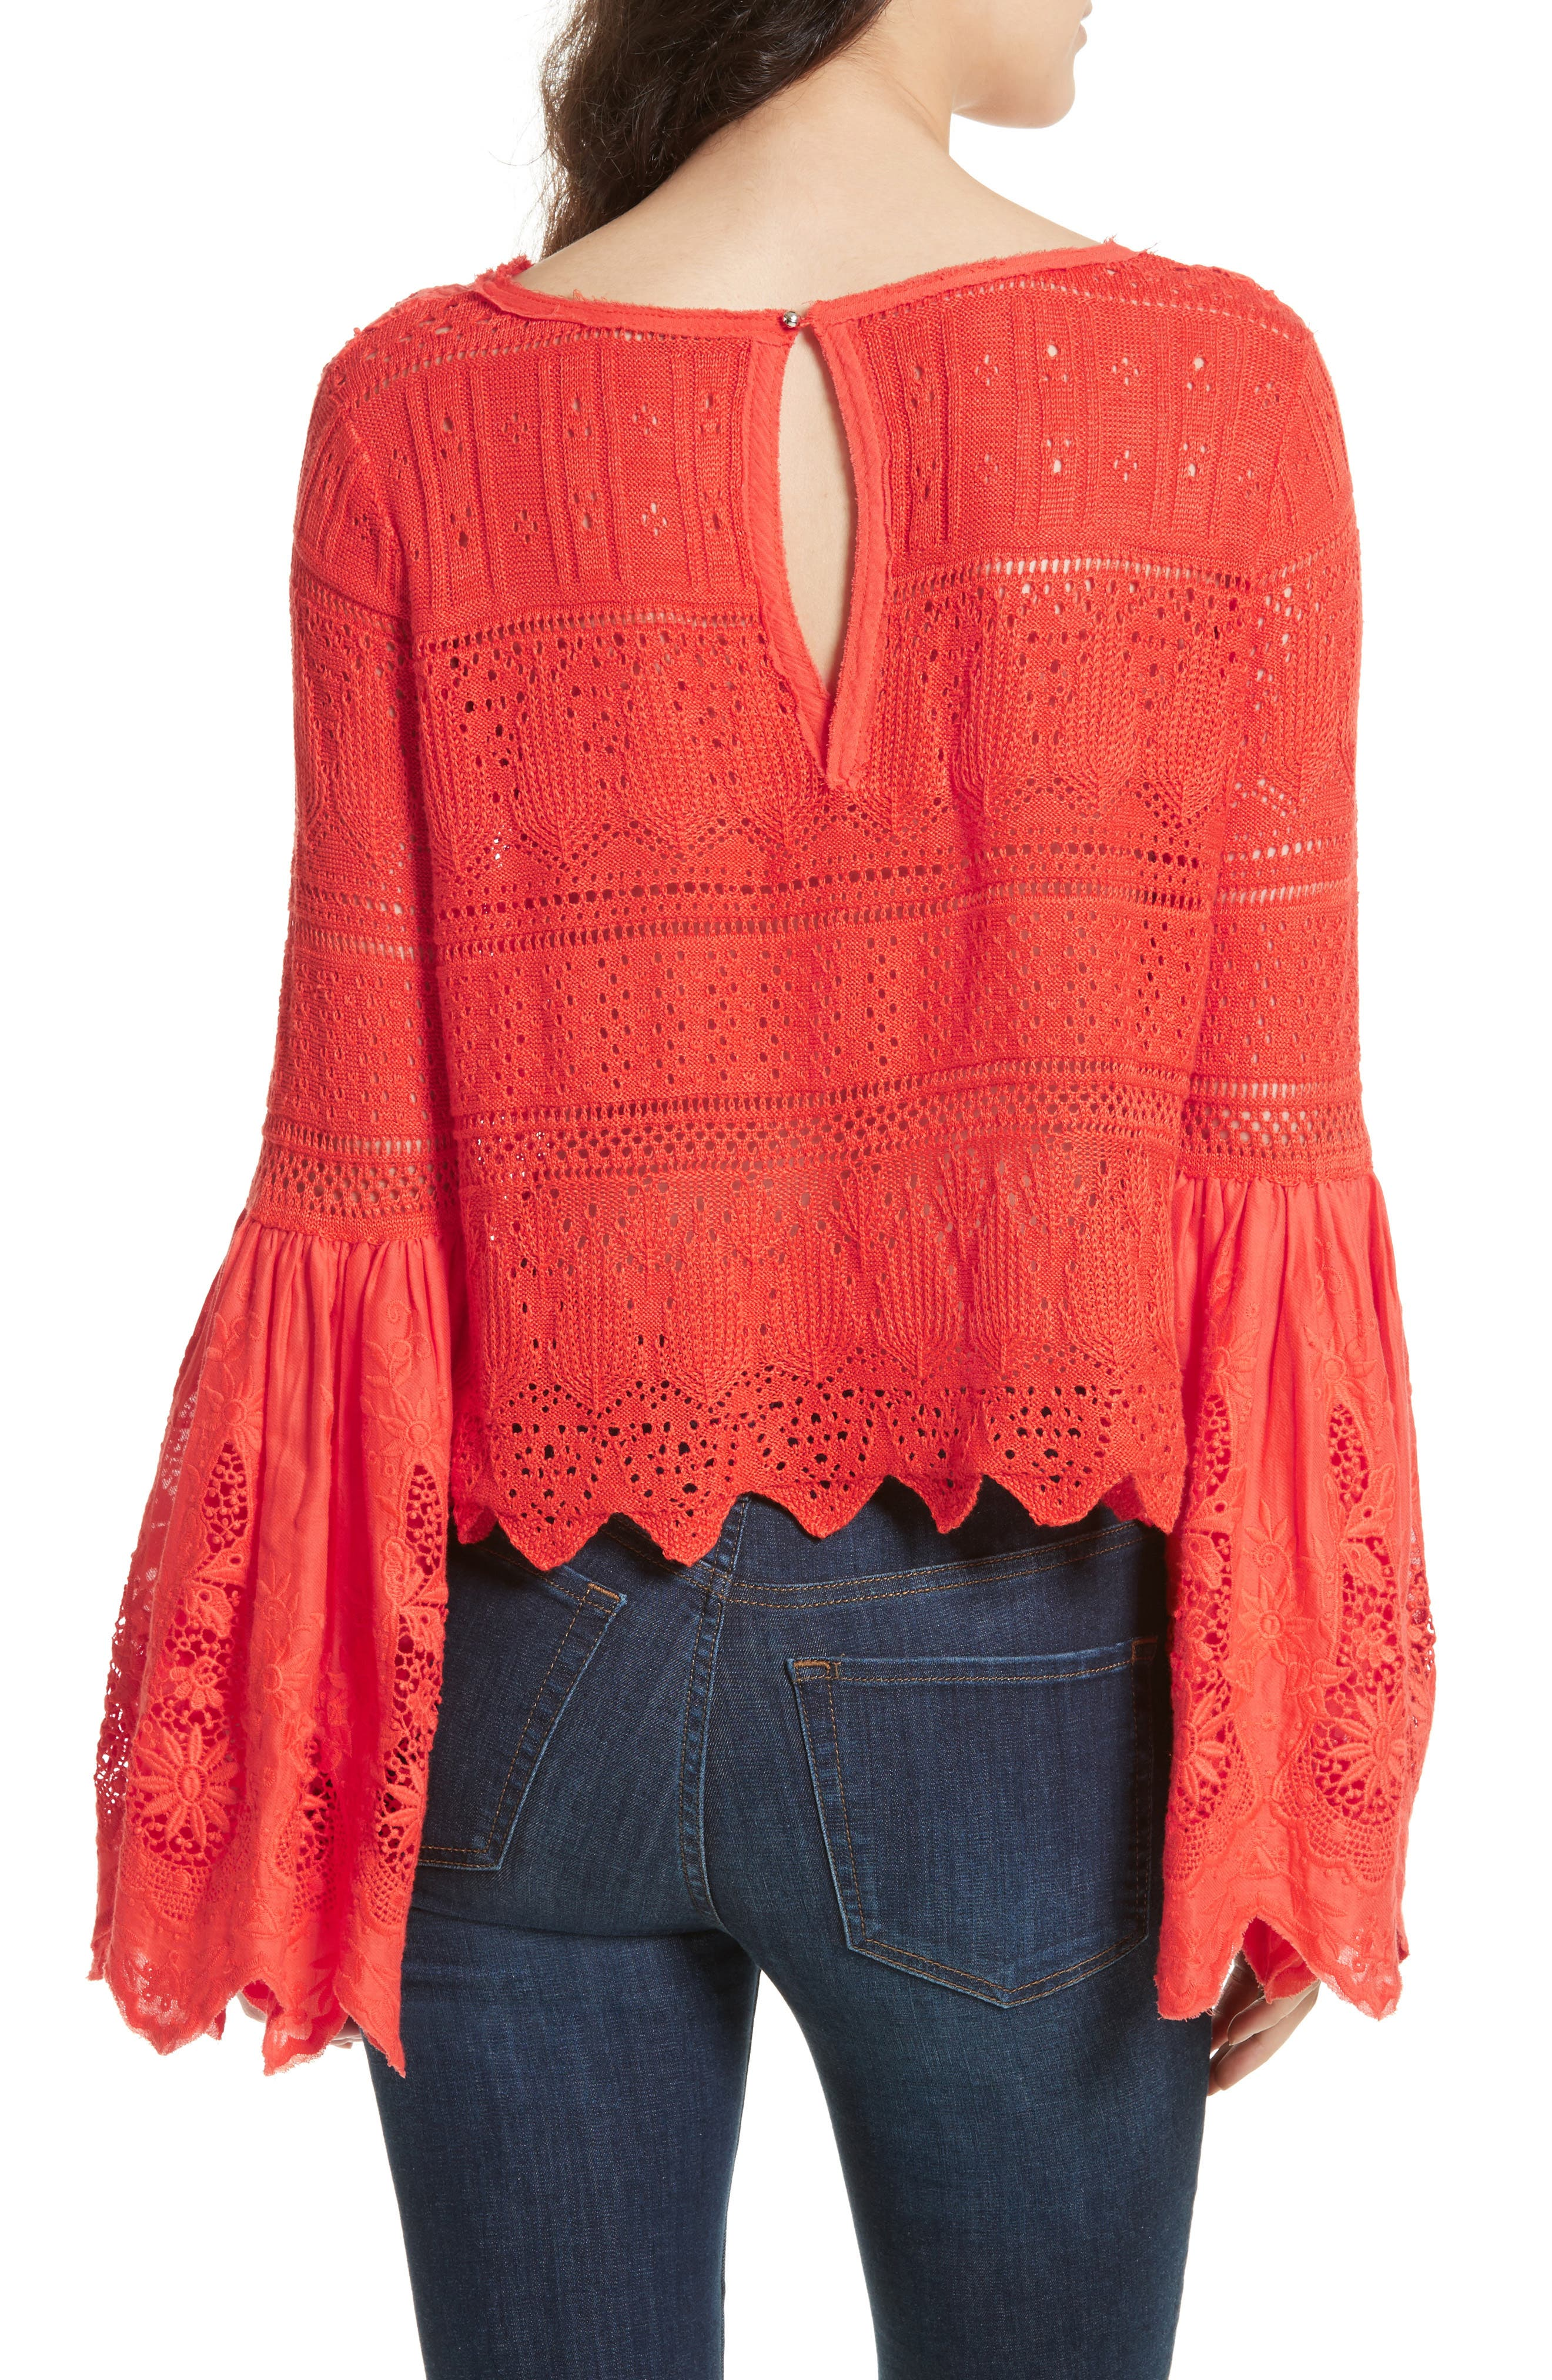 Once Upon a Time Lace Top,                             Alternate thumbnail 2, color,                             Red